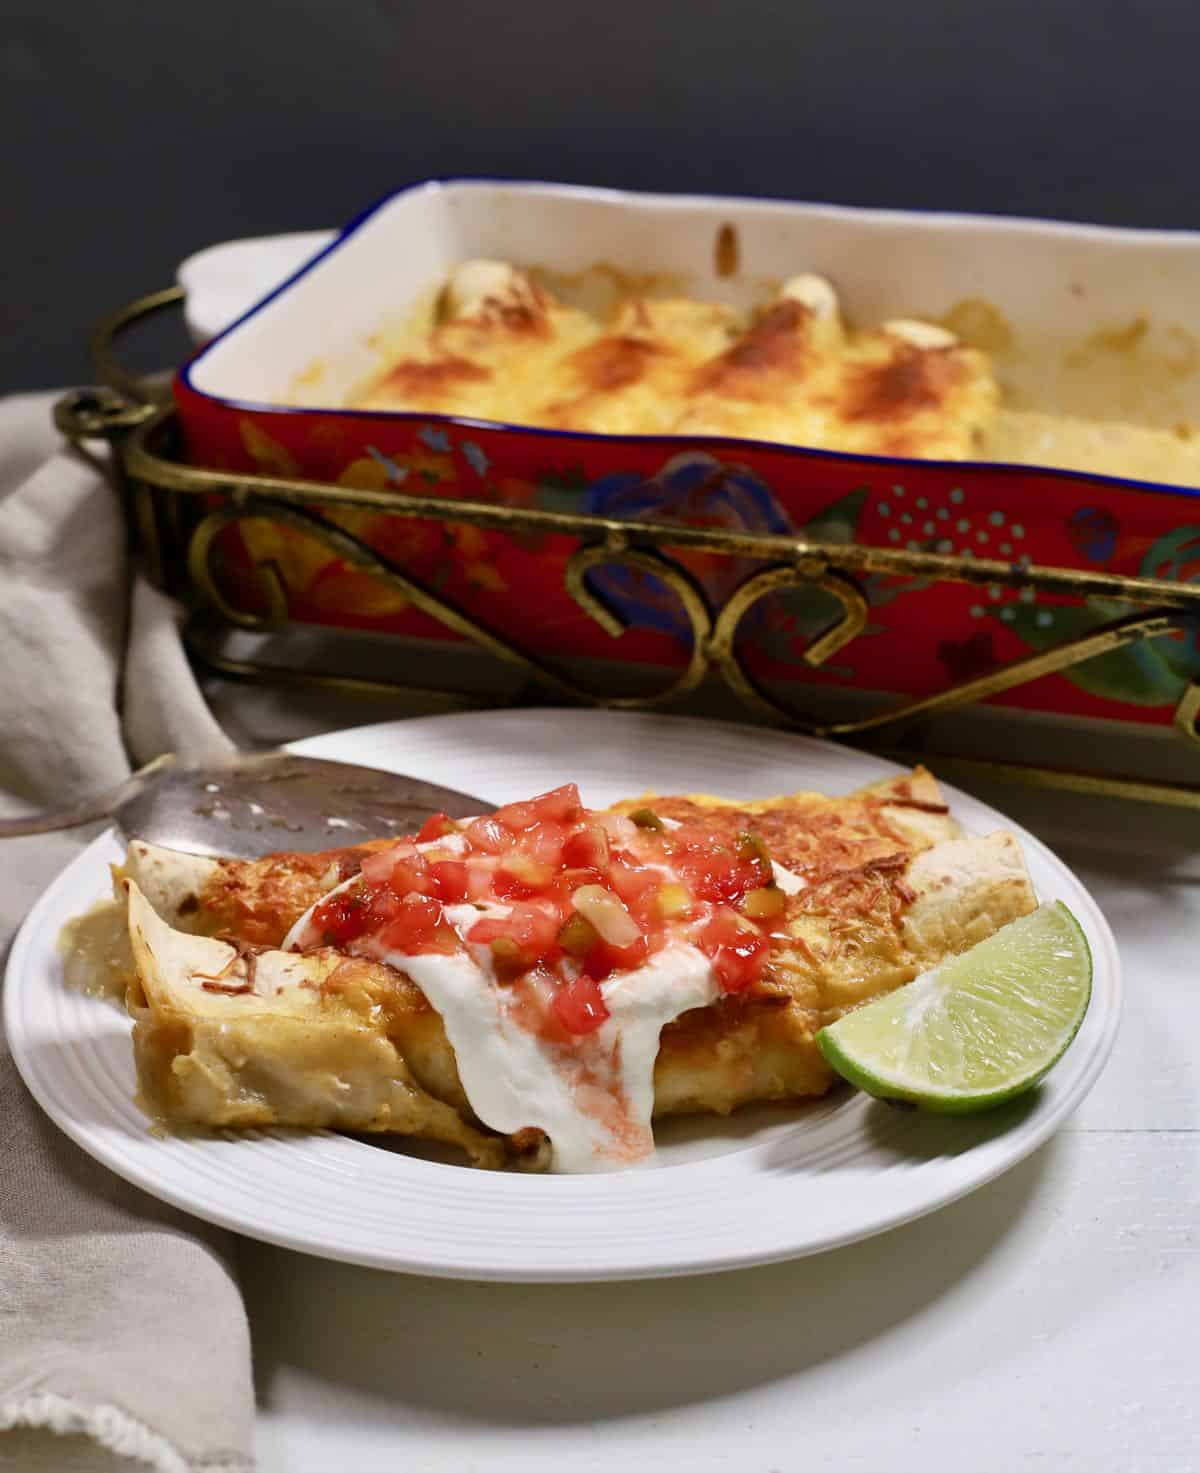 Two enchiladas on a plate topped with salsa and sour cream.